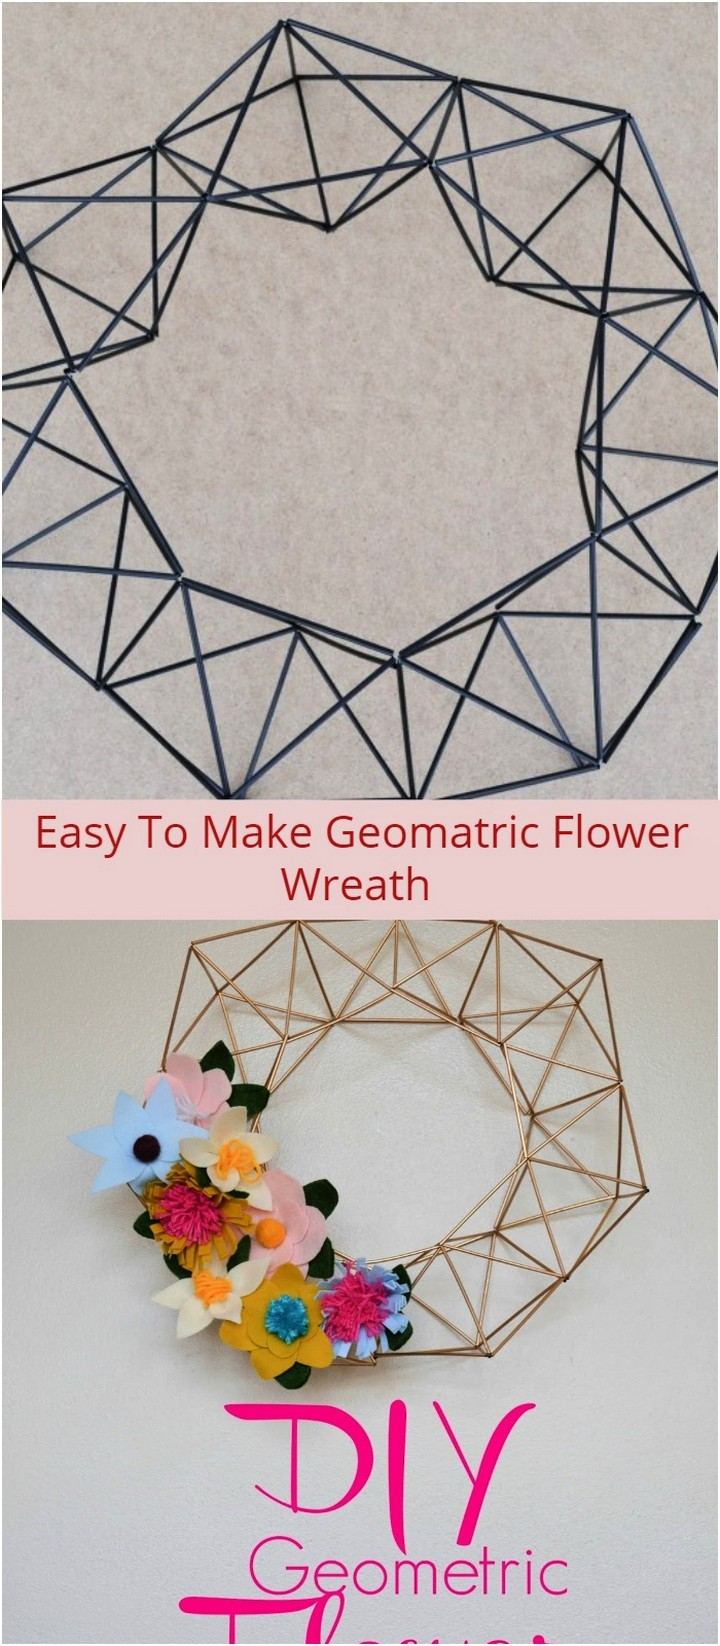 Easy To Make Geomatric Flower Wreath